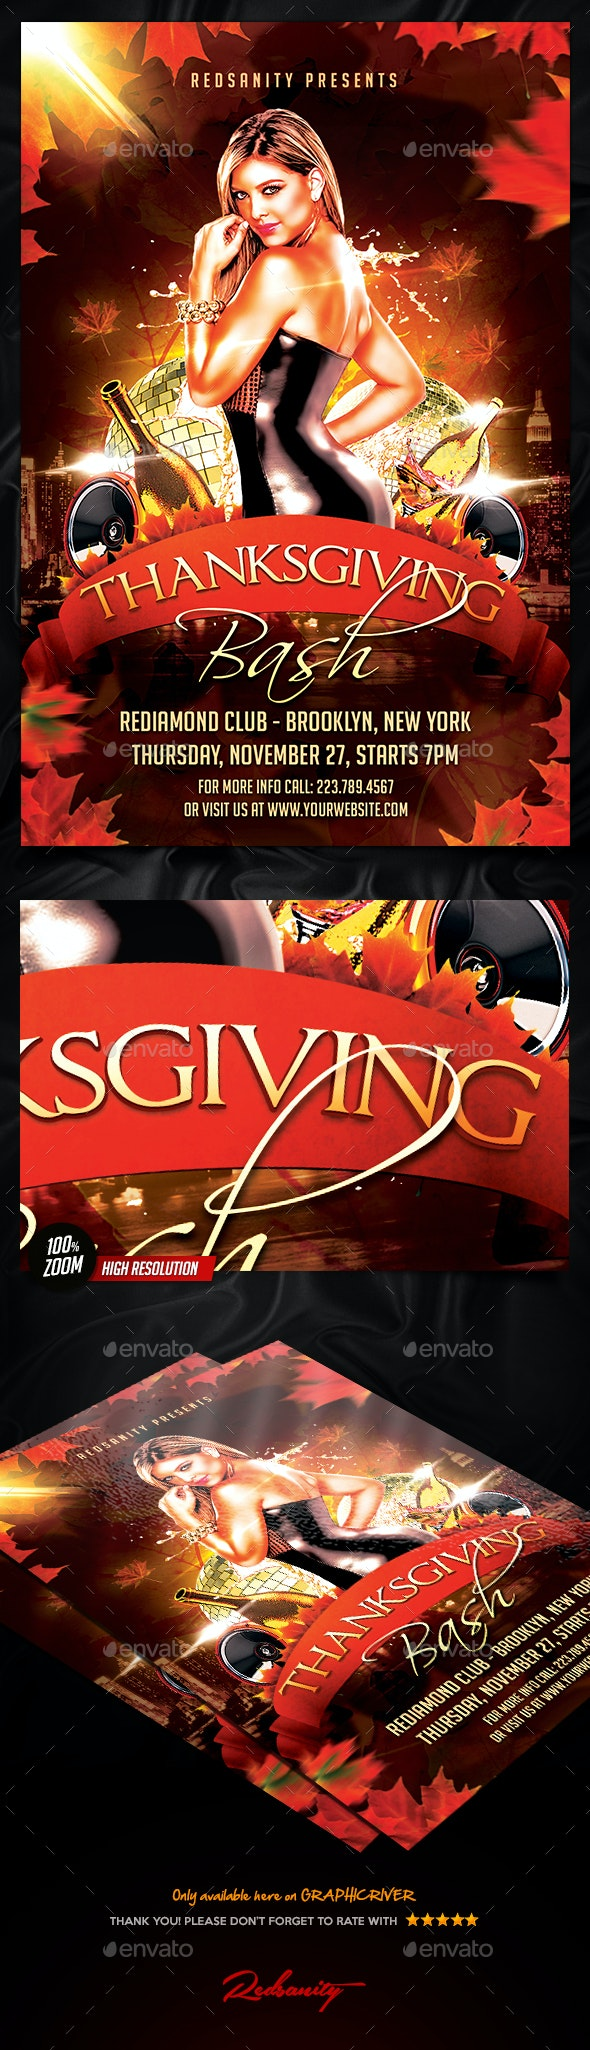 Thanksgiving Bash Flyer - Holidays Events